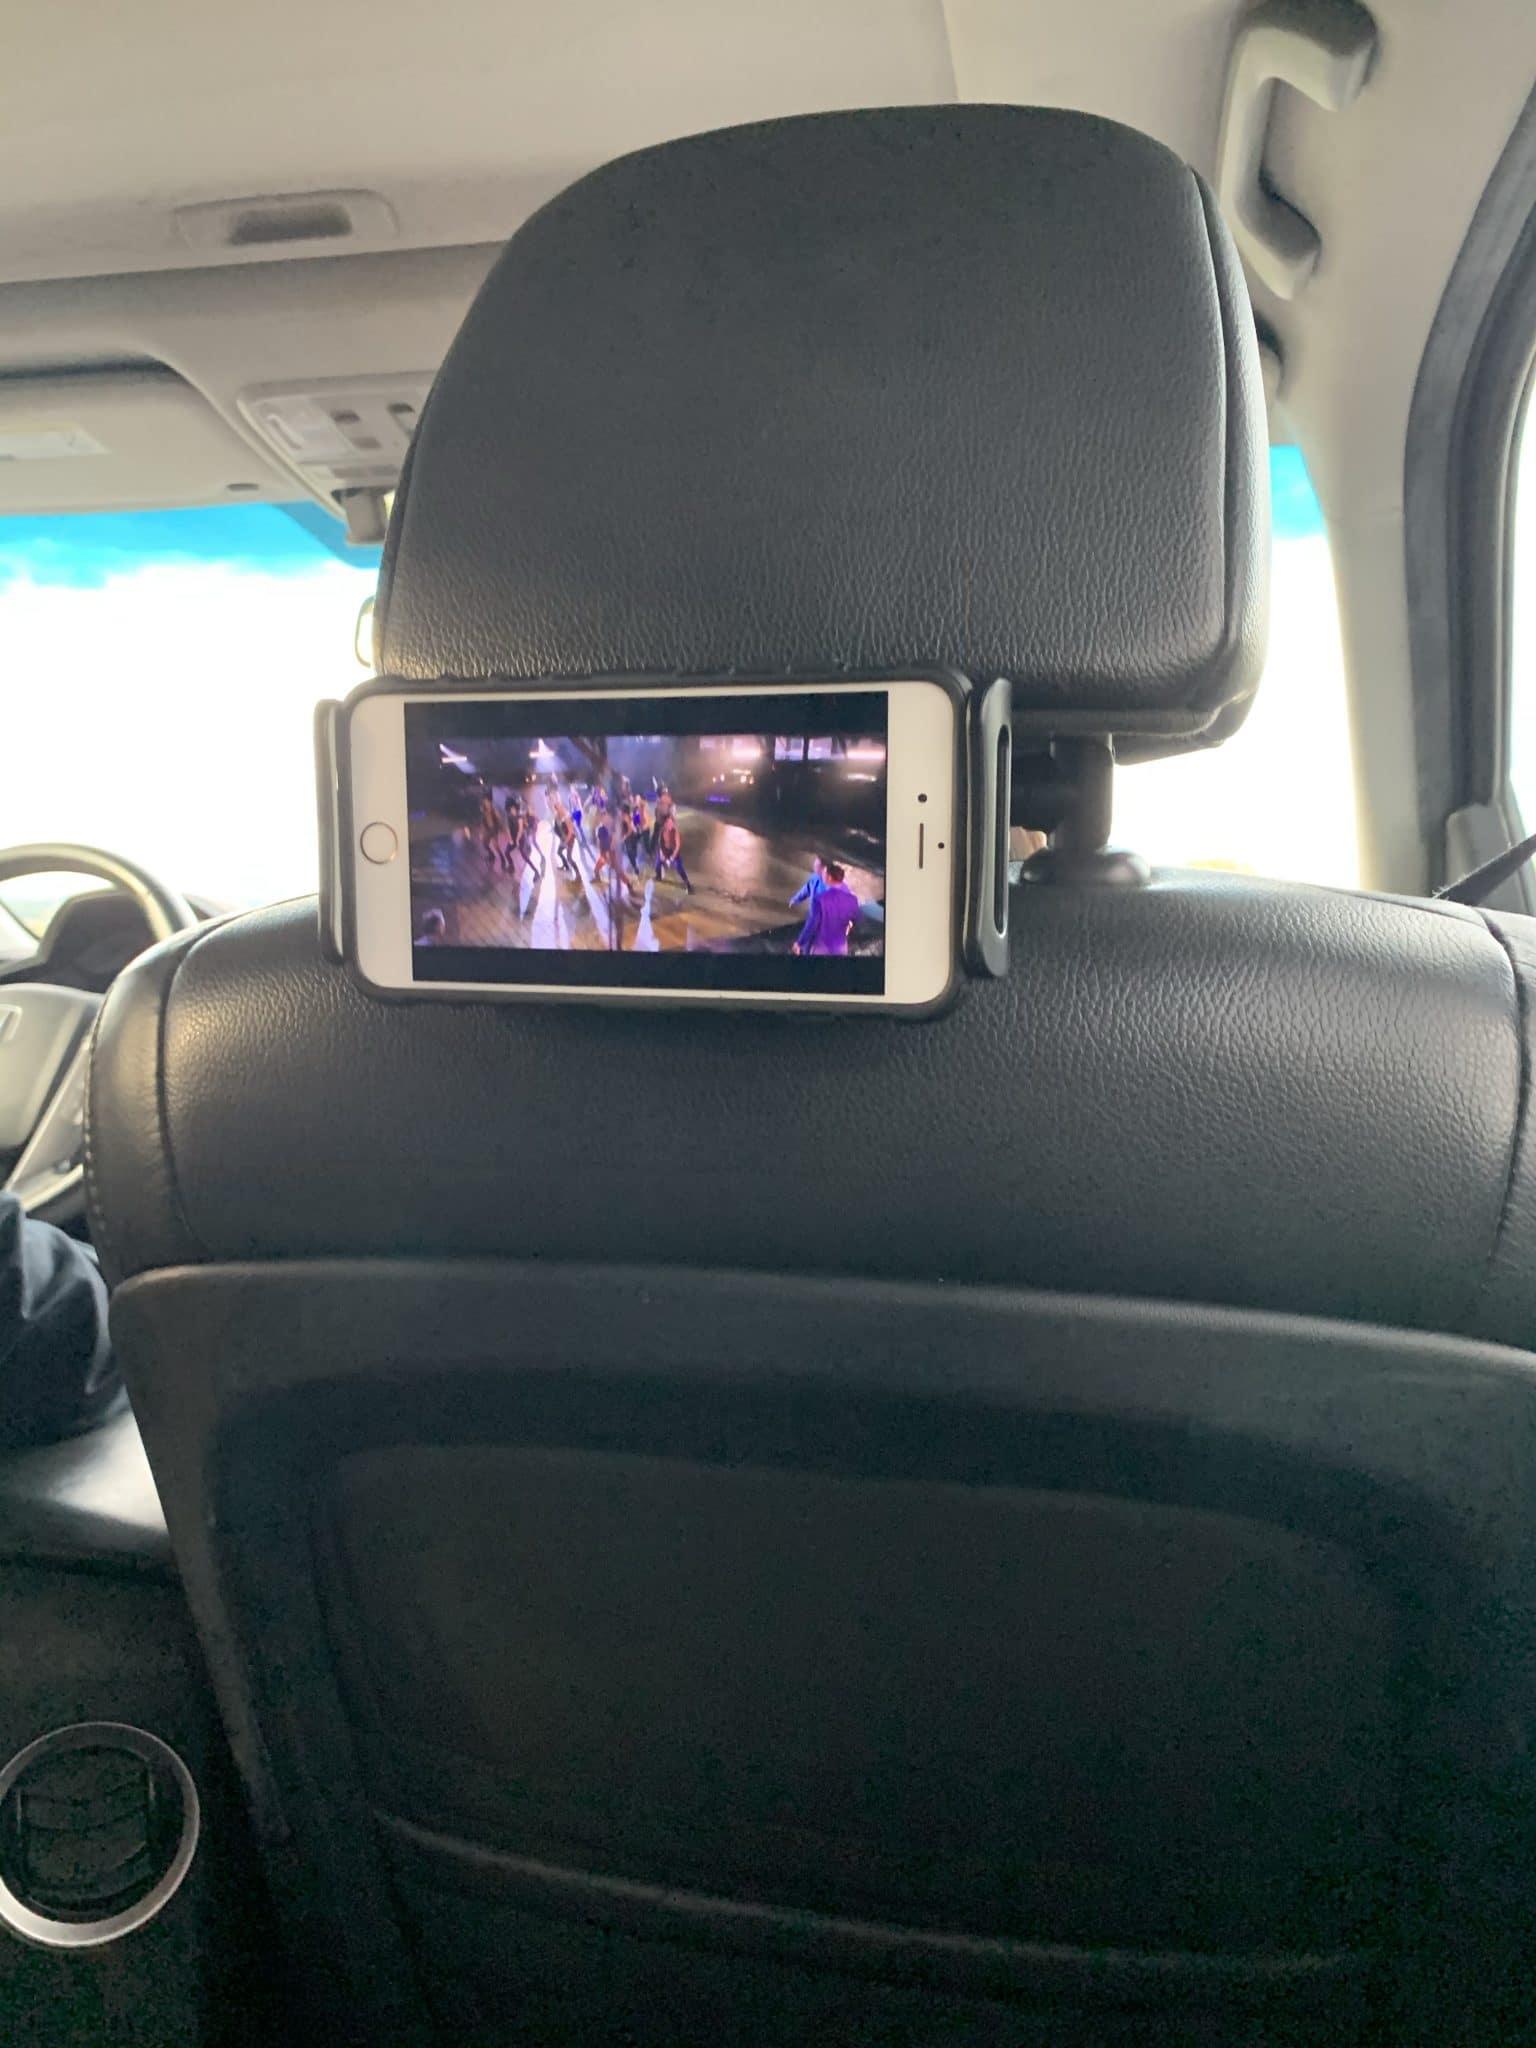 Car seat phone holder, seat back tablet holder, road trip tips for kids, Stilettos and Diapers